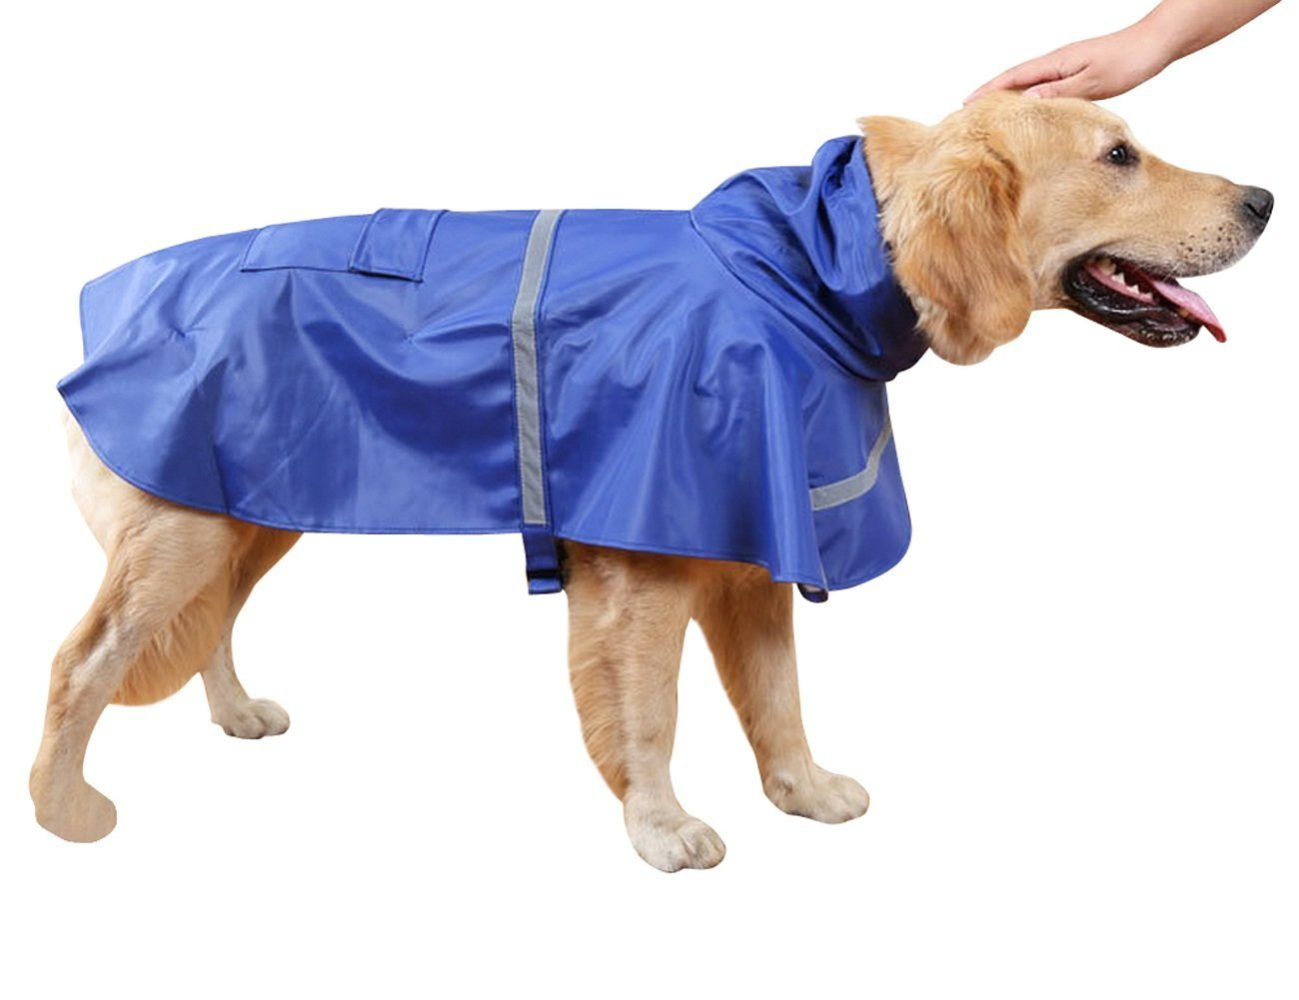 Medium Large Dog Rain Coat Waterproof Jacket Trousersuit for Sun Rain Protection